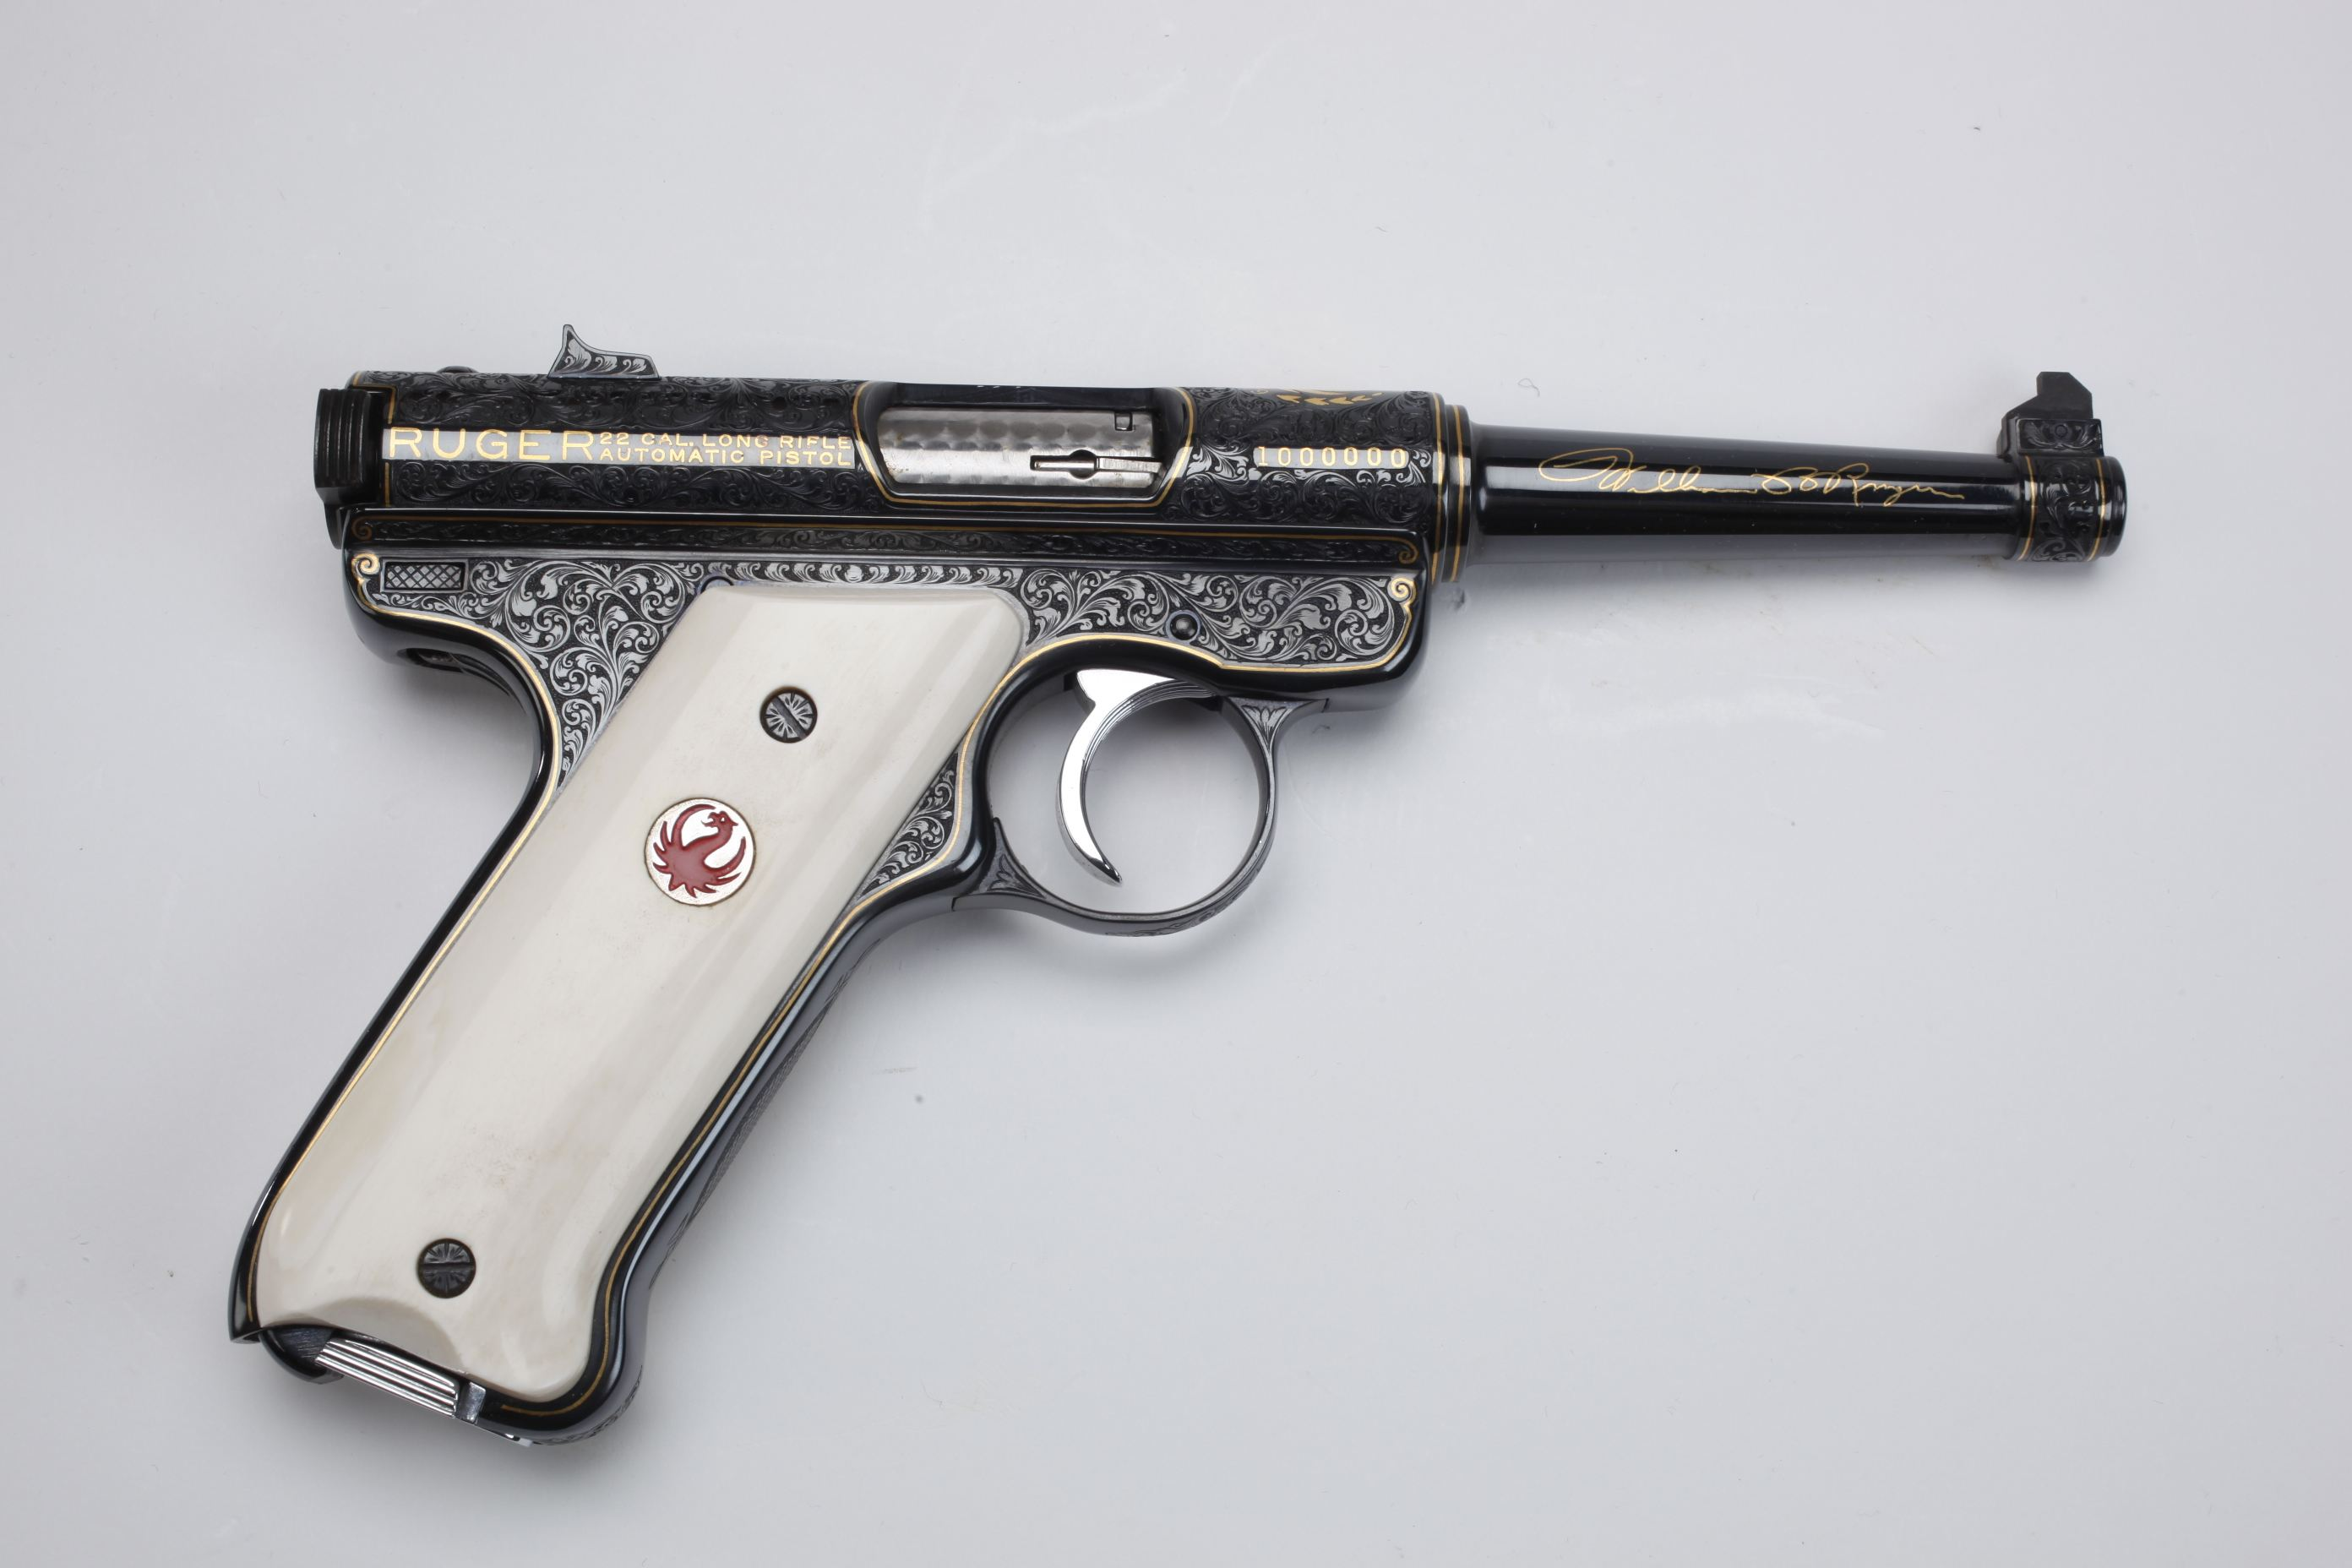 Ruger & Co Standard Semi Automatic Pistol